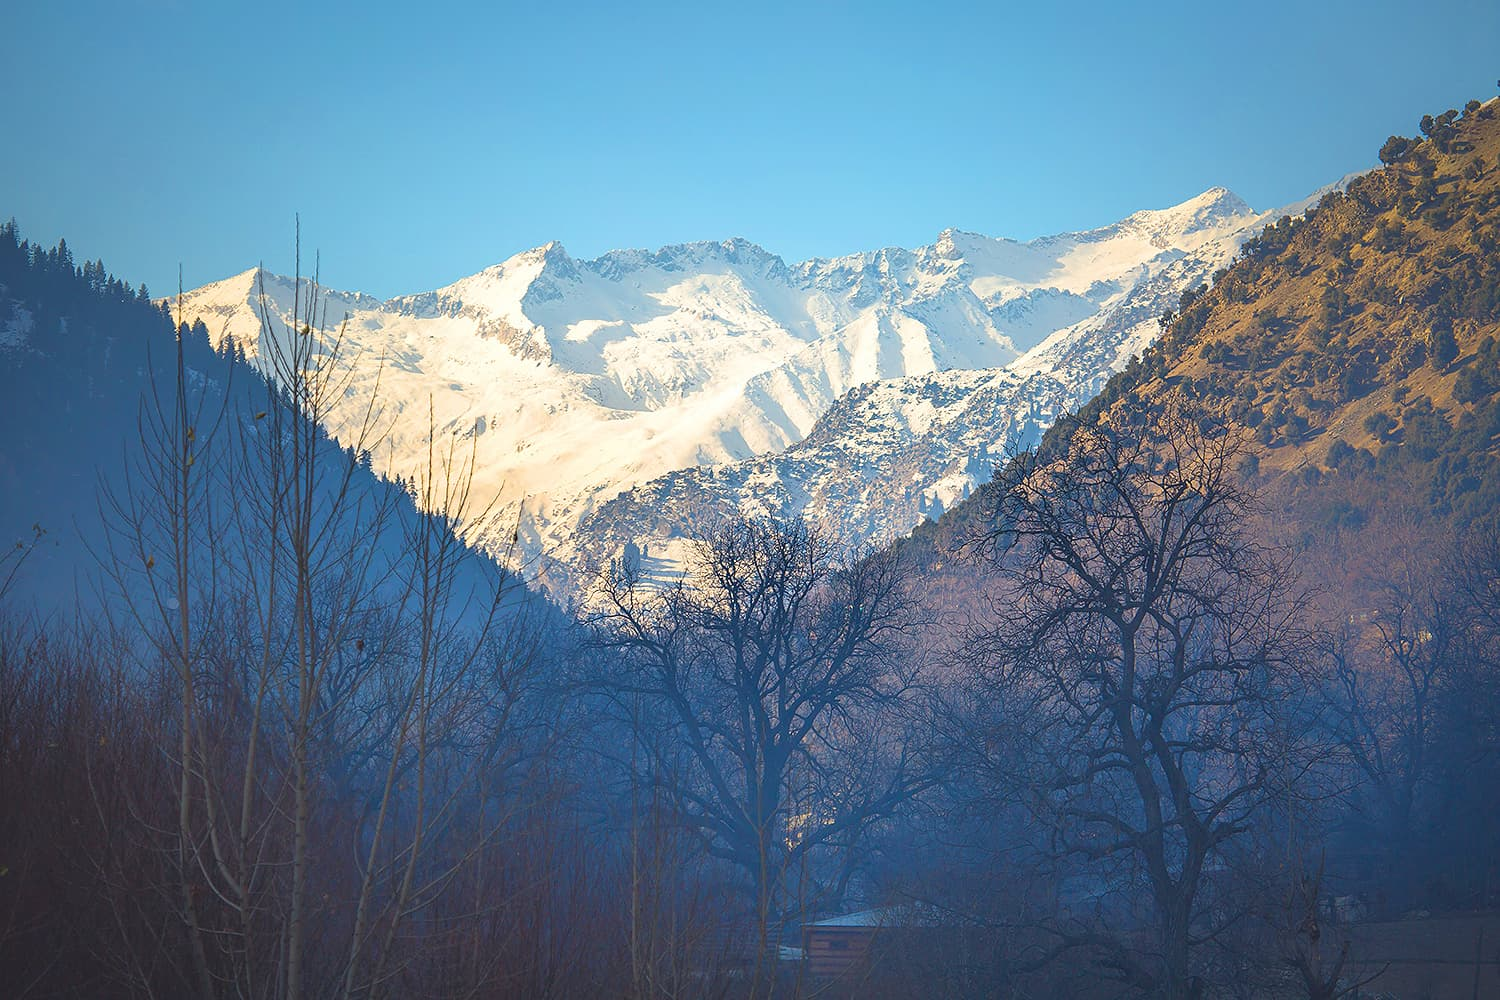 Mountains from across the border – Afghanistan.